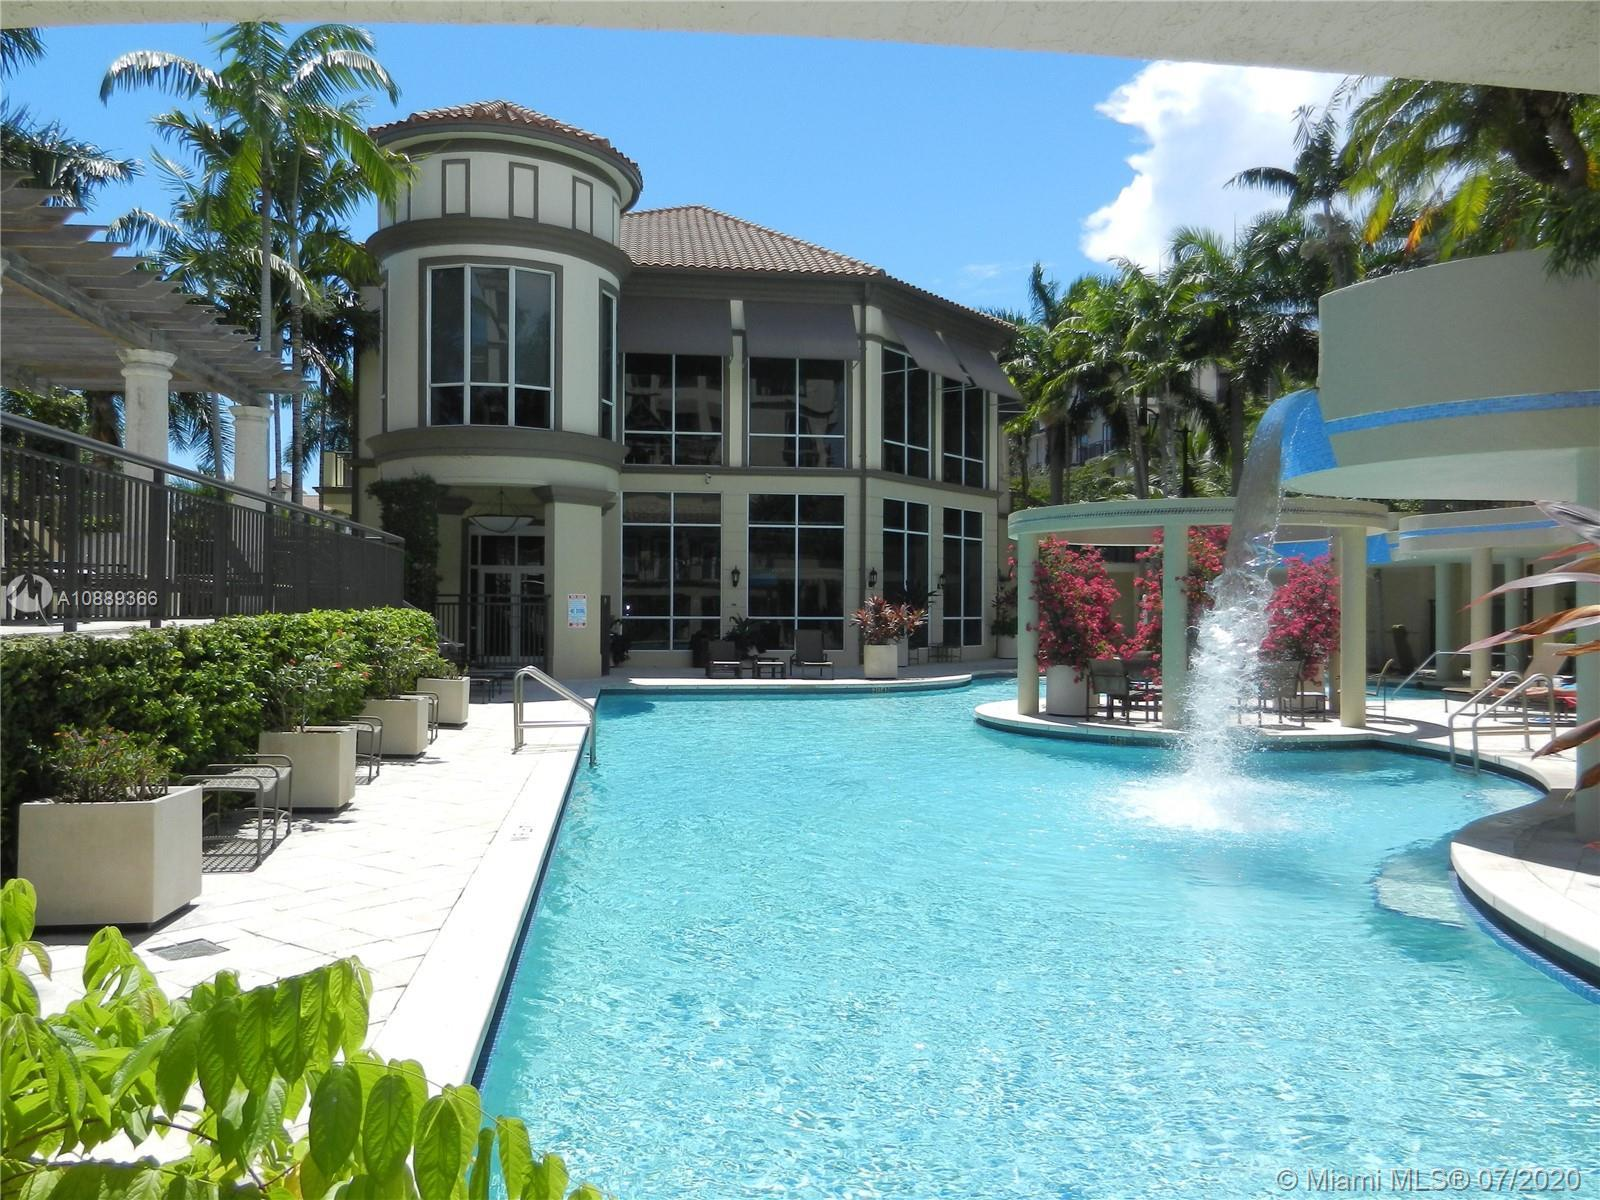 Spacious one bedroom two full bath condo plus 2 parking spots, located in the best residential compl